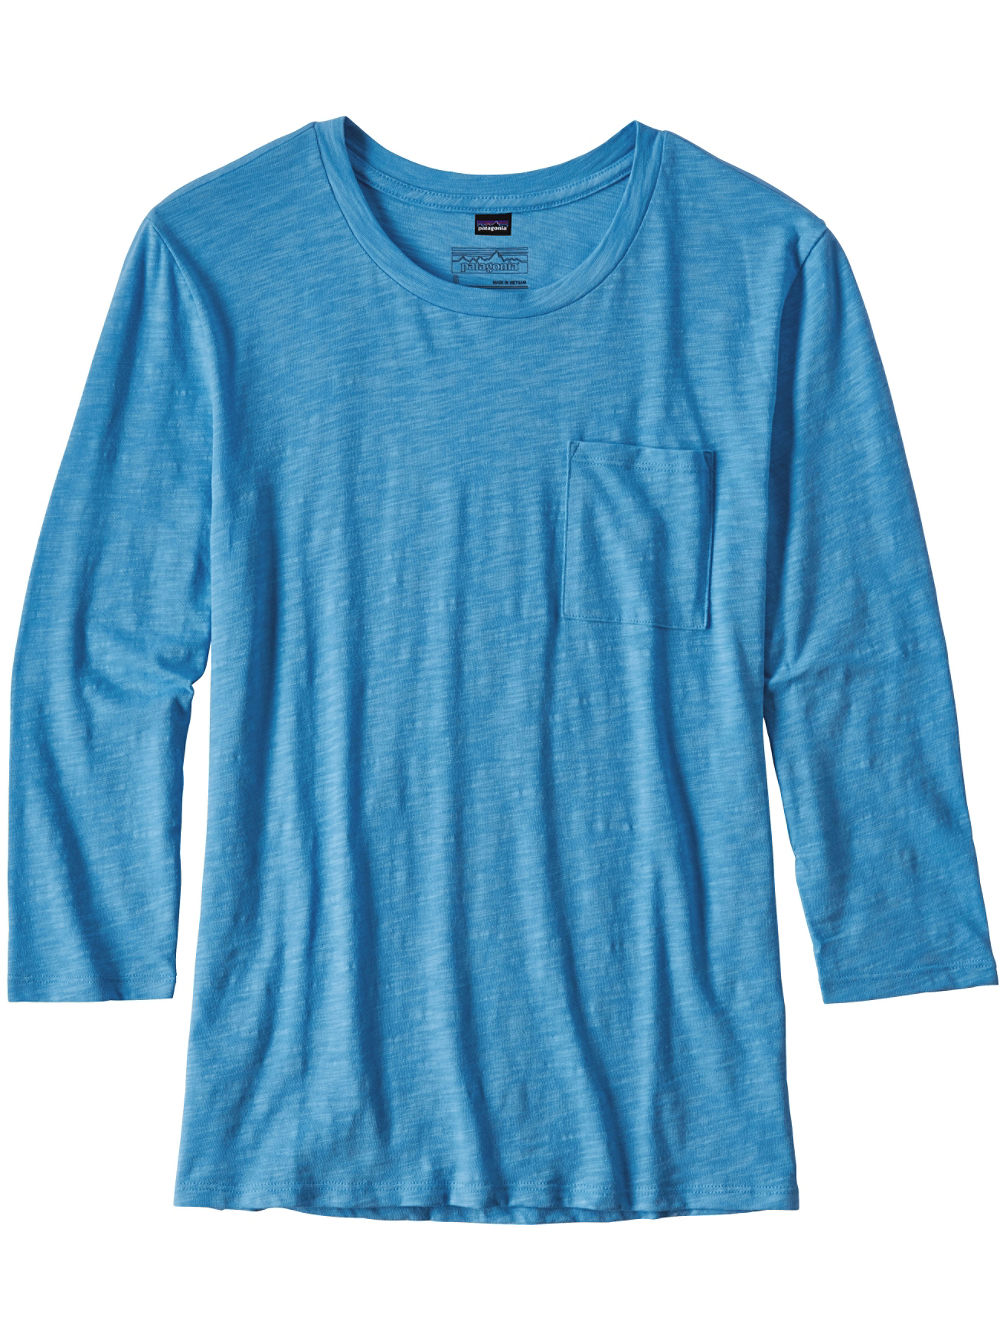 Mainstay 3/4 Sleeved T-Shirt